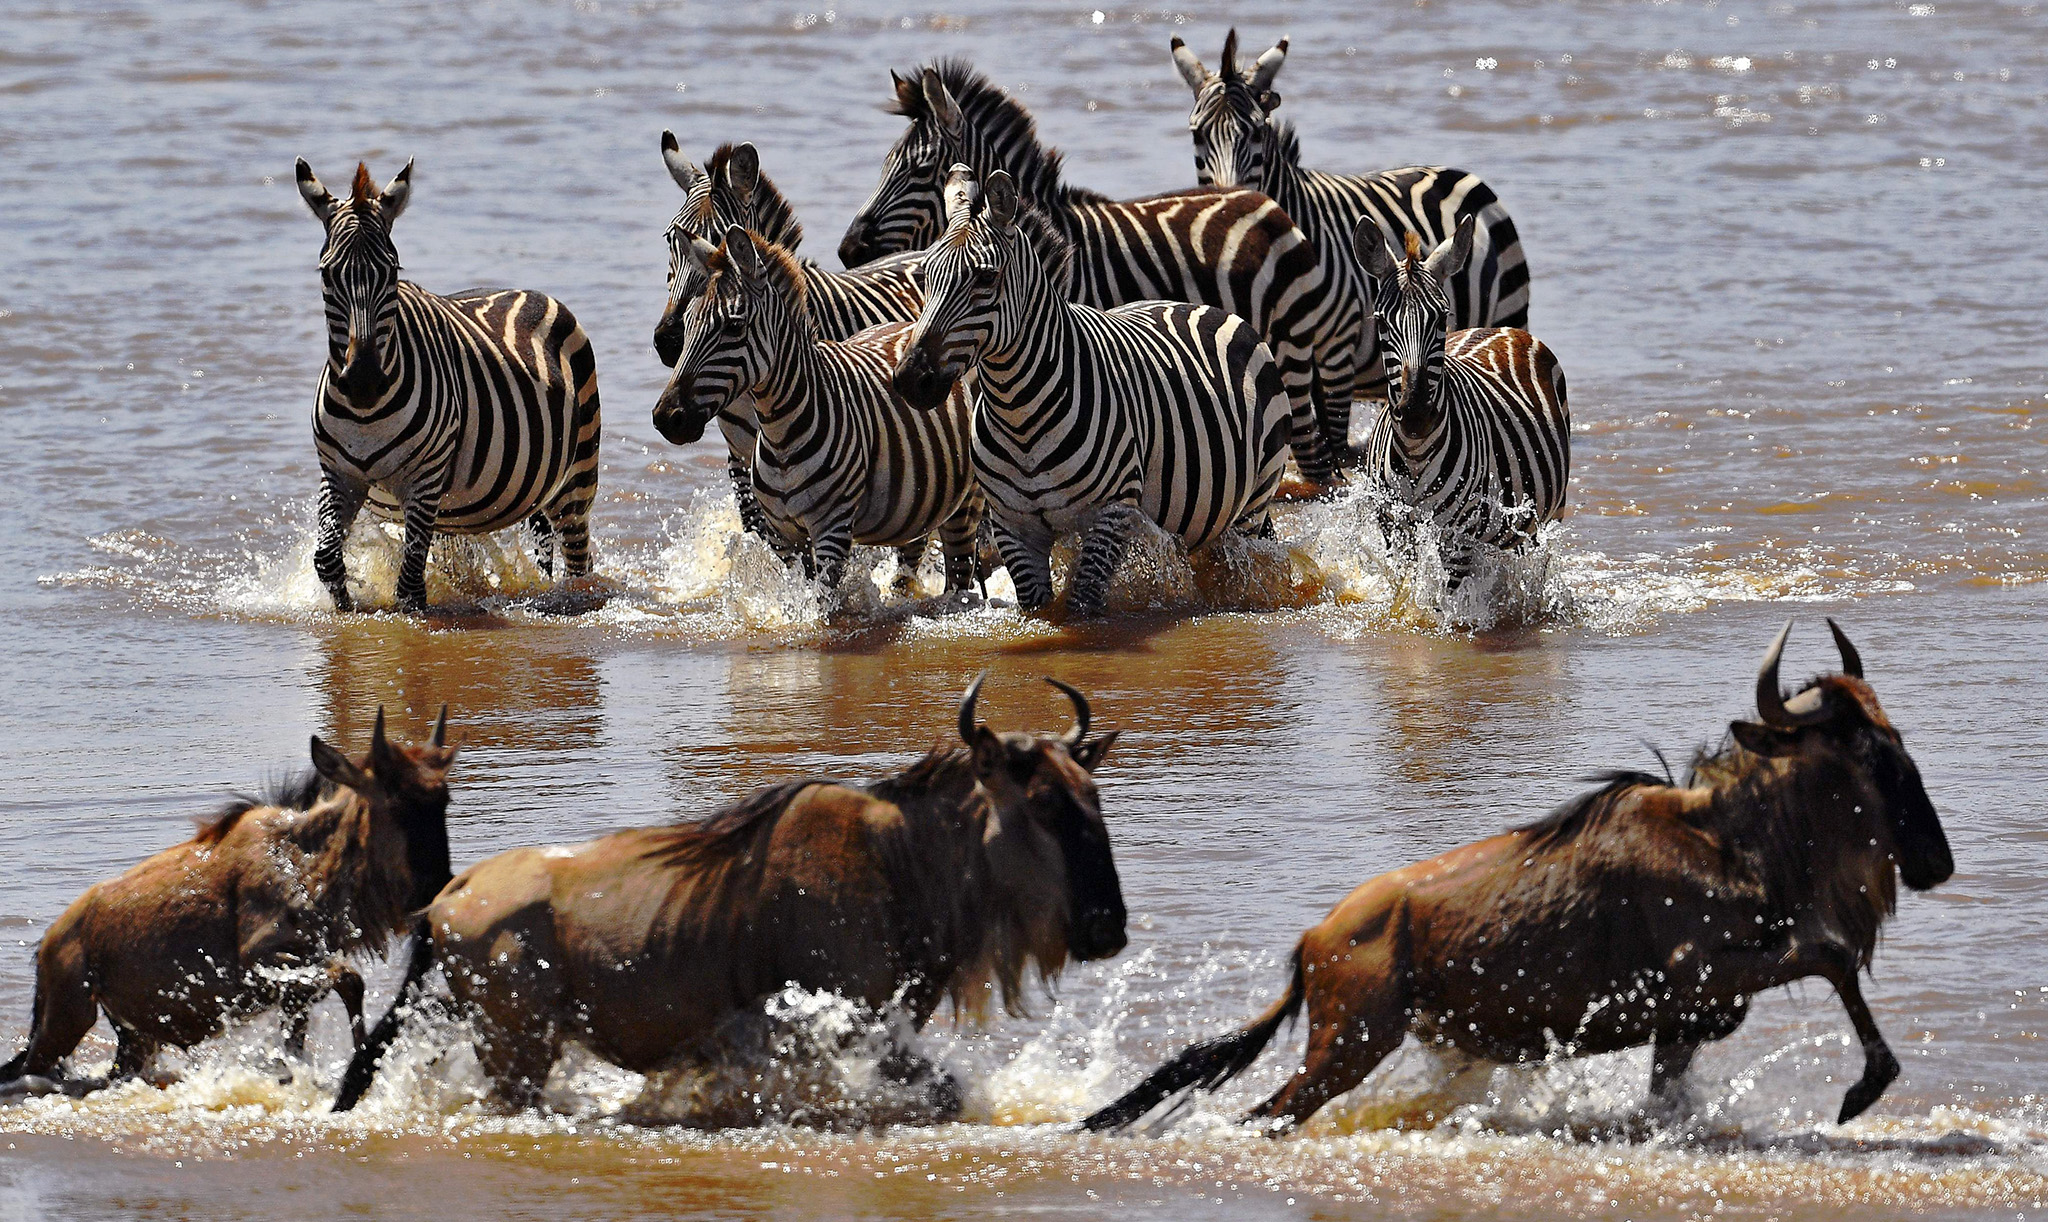 Zebras walk towards crossing wildebeest in the Mara river during the annual wildebeest migration in the Masai Mara game reserve on September 13, 2016.  / AFP PHOTO / CARL DE SOUZACARL DE SOUZA/AFP/Getty Images